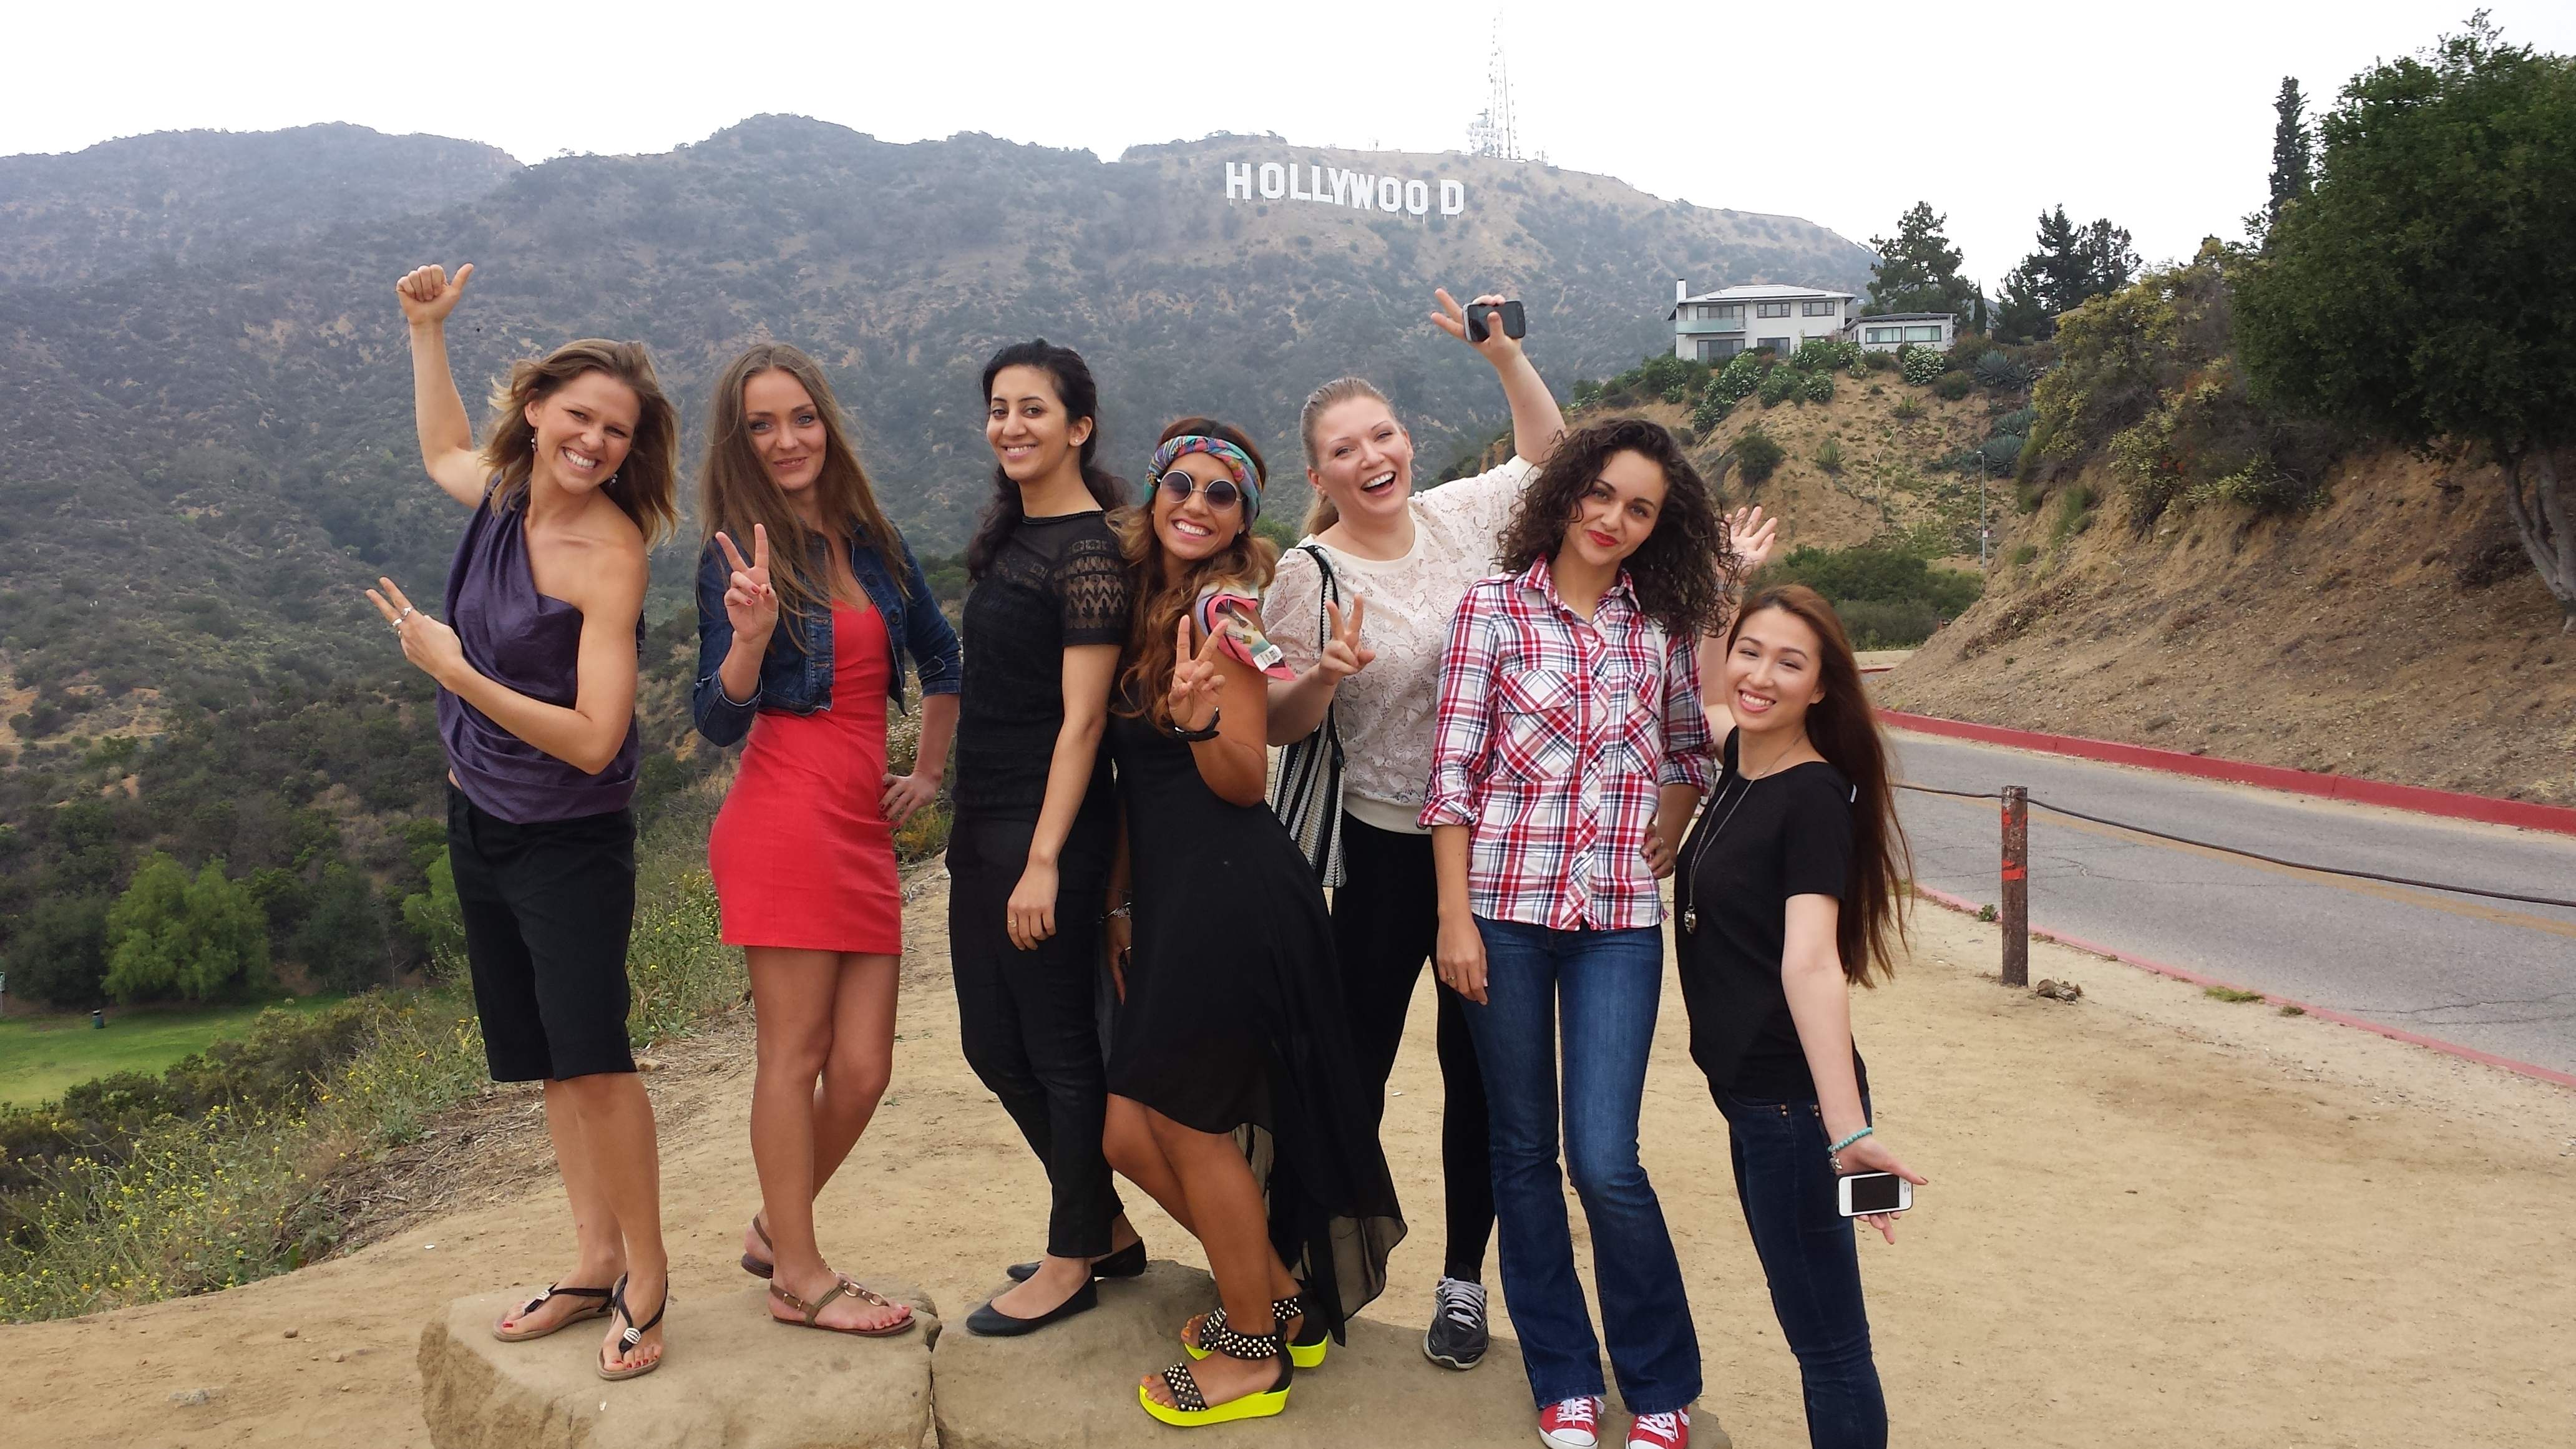 Excited friends near Hollywood Sign